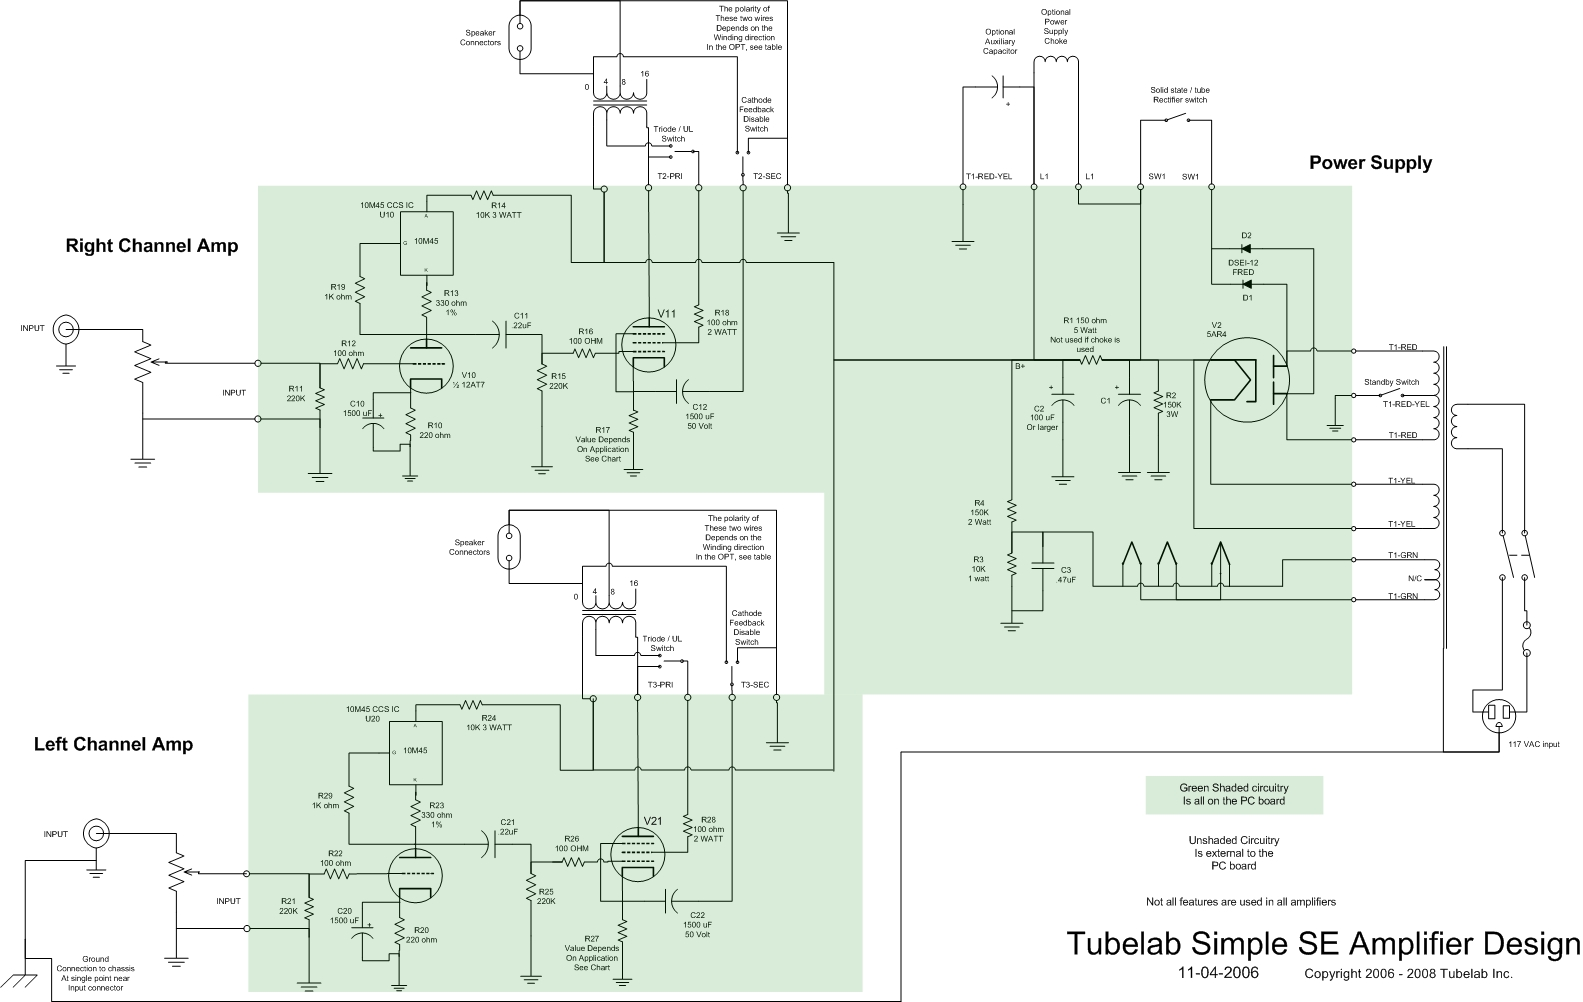 148638 Tube Se  lifier 6p3s Russian Tube besides Schematic furthermore 807 Tube  lifier Schematic     Triodeel   Schindex Htm also 2x30 Volt 6  er Smps further 2x25w Stereo Power  lifier With S 4141ii. on tube power amp schematic